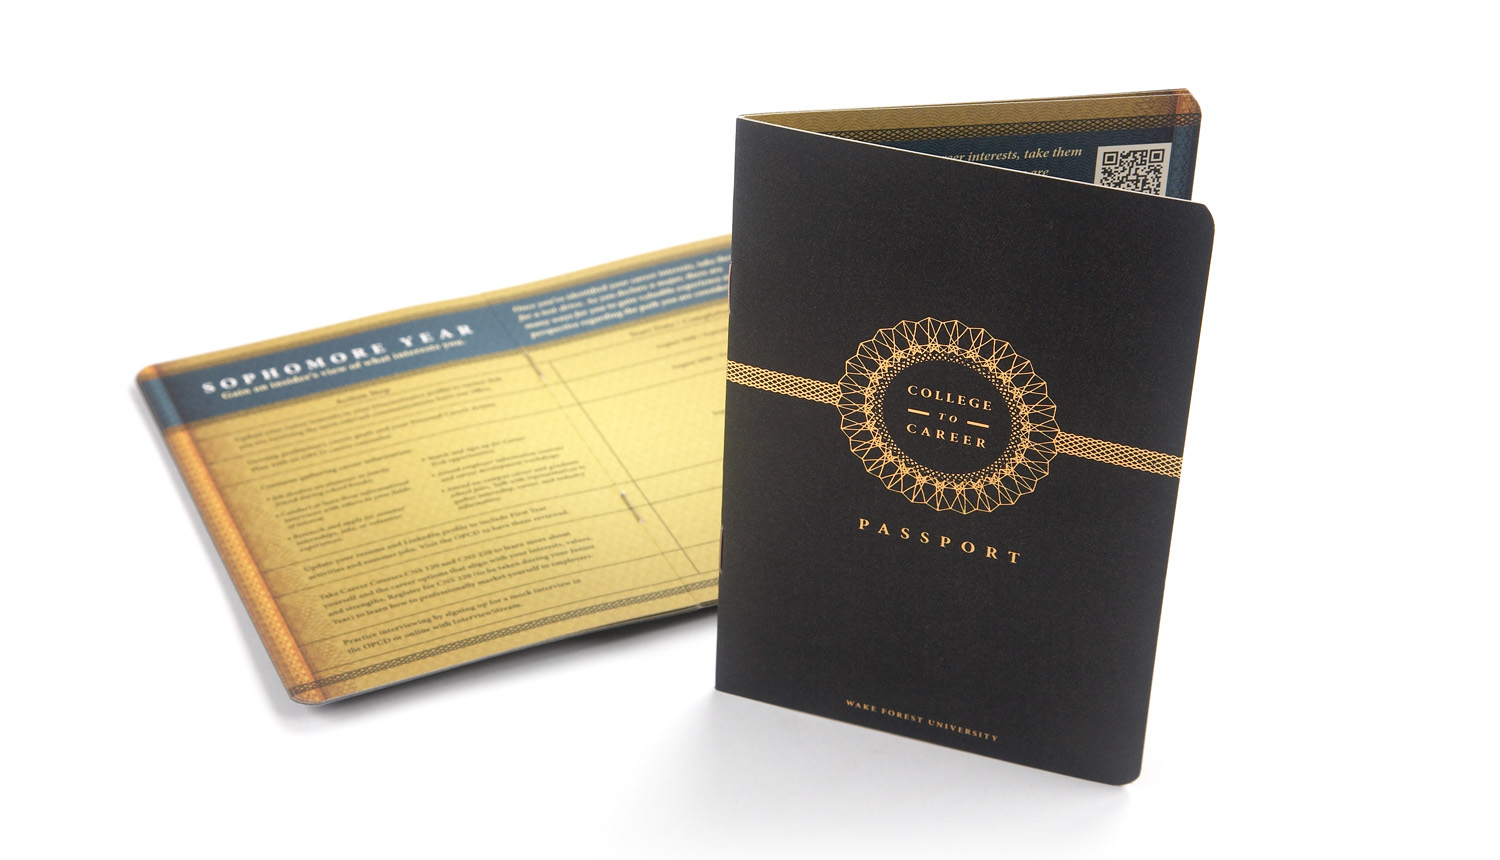 STUDENT PASSPORT  Each newly enrolled student receives this passport to help guide them successfully through each year of college and into their prospective career.   Brochure